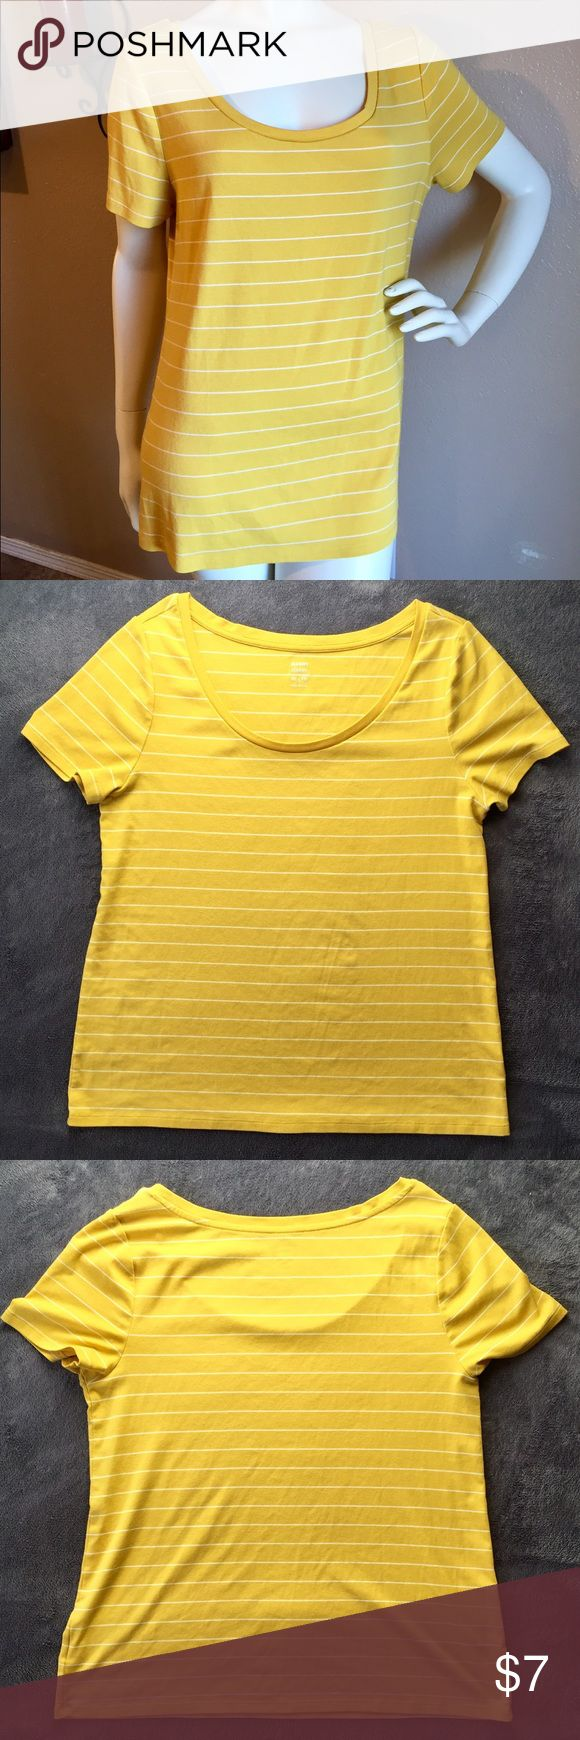 Women's✨Old Navy✨Scoop-neck Top Gold-ish/Yellow scoop-neck top with white stripes from Old Navy! Perfect pop of color for your spring/summer attire!! Used but in great condition!! Women's XL, material has a soft, silky feel. Very comfortable to wear, not clingy or tight fitting.👍🏻🚭 •55% cotton/ 39% modal/ 6% spandex Old Navy Tops Tees - Short Sleeve